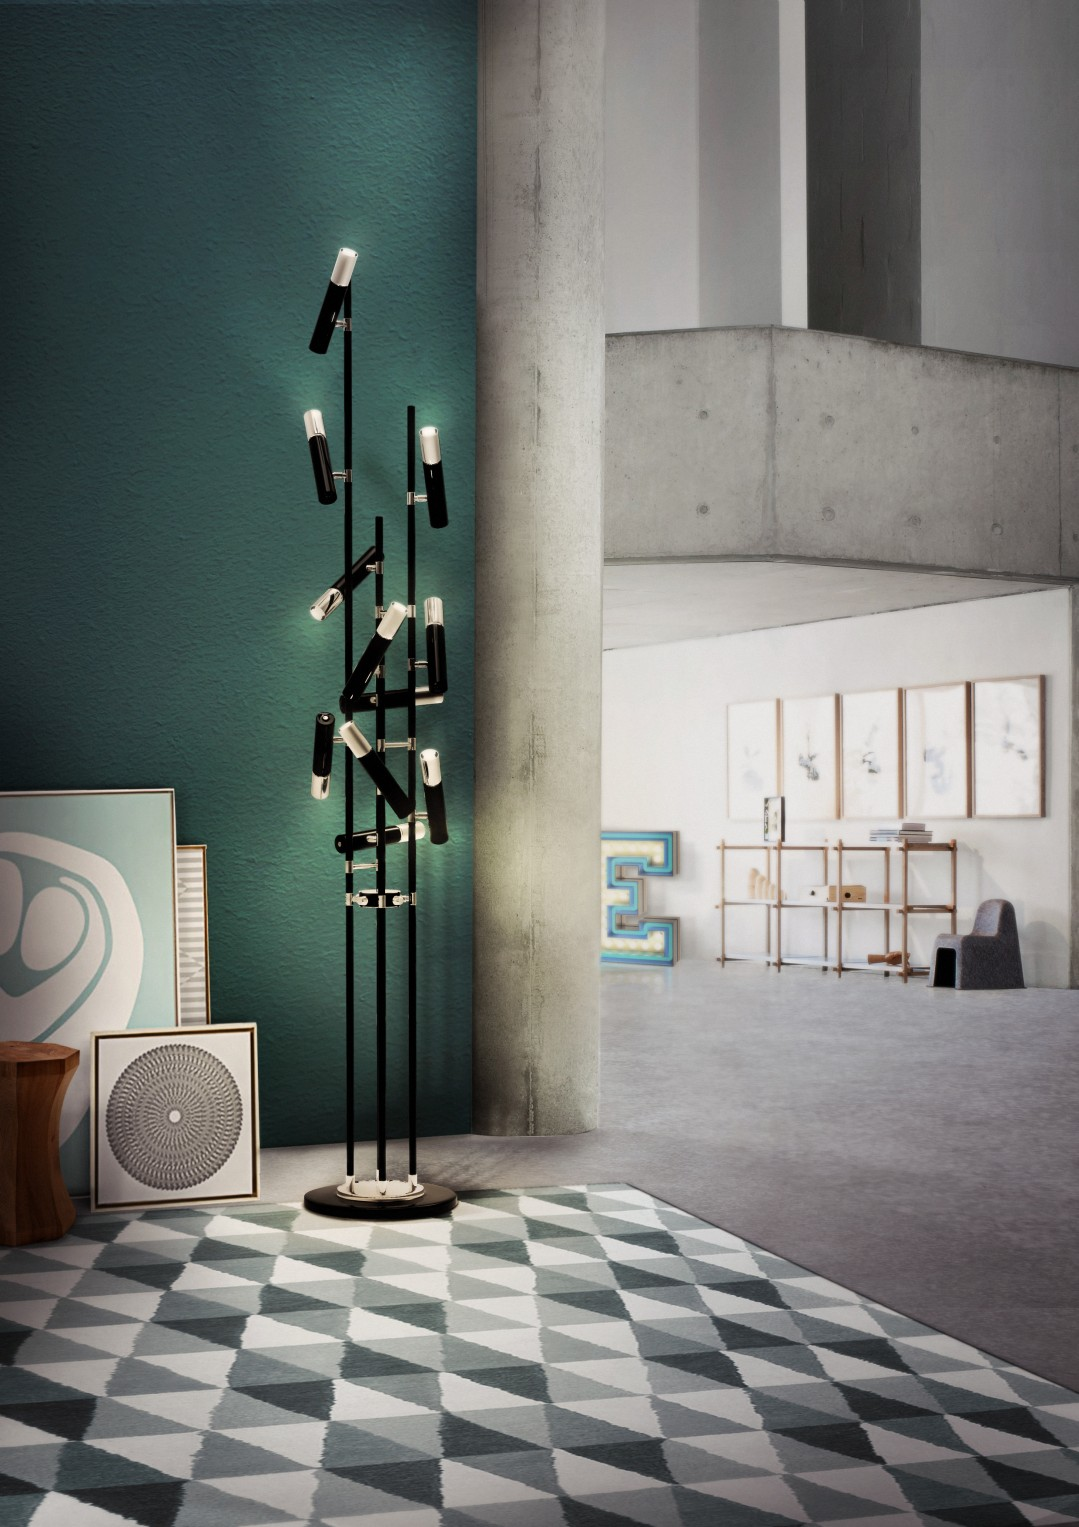 ike floor lamp Ike Floor Lamp Gets An In-Depth Look Here! ike 3 floor ambience 03 HRe592ae5c050344128230e64623b5d2c3